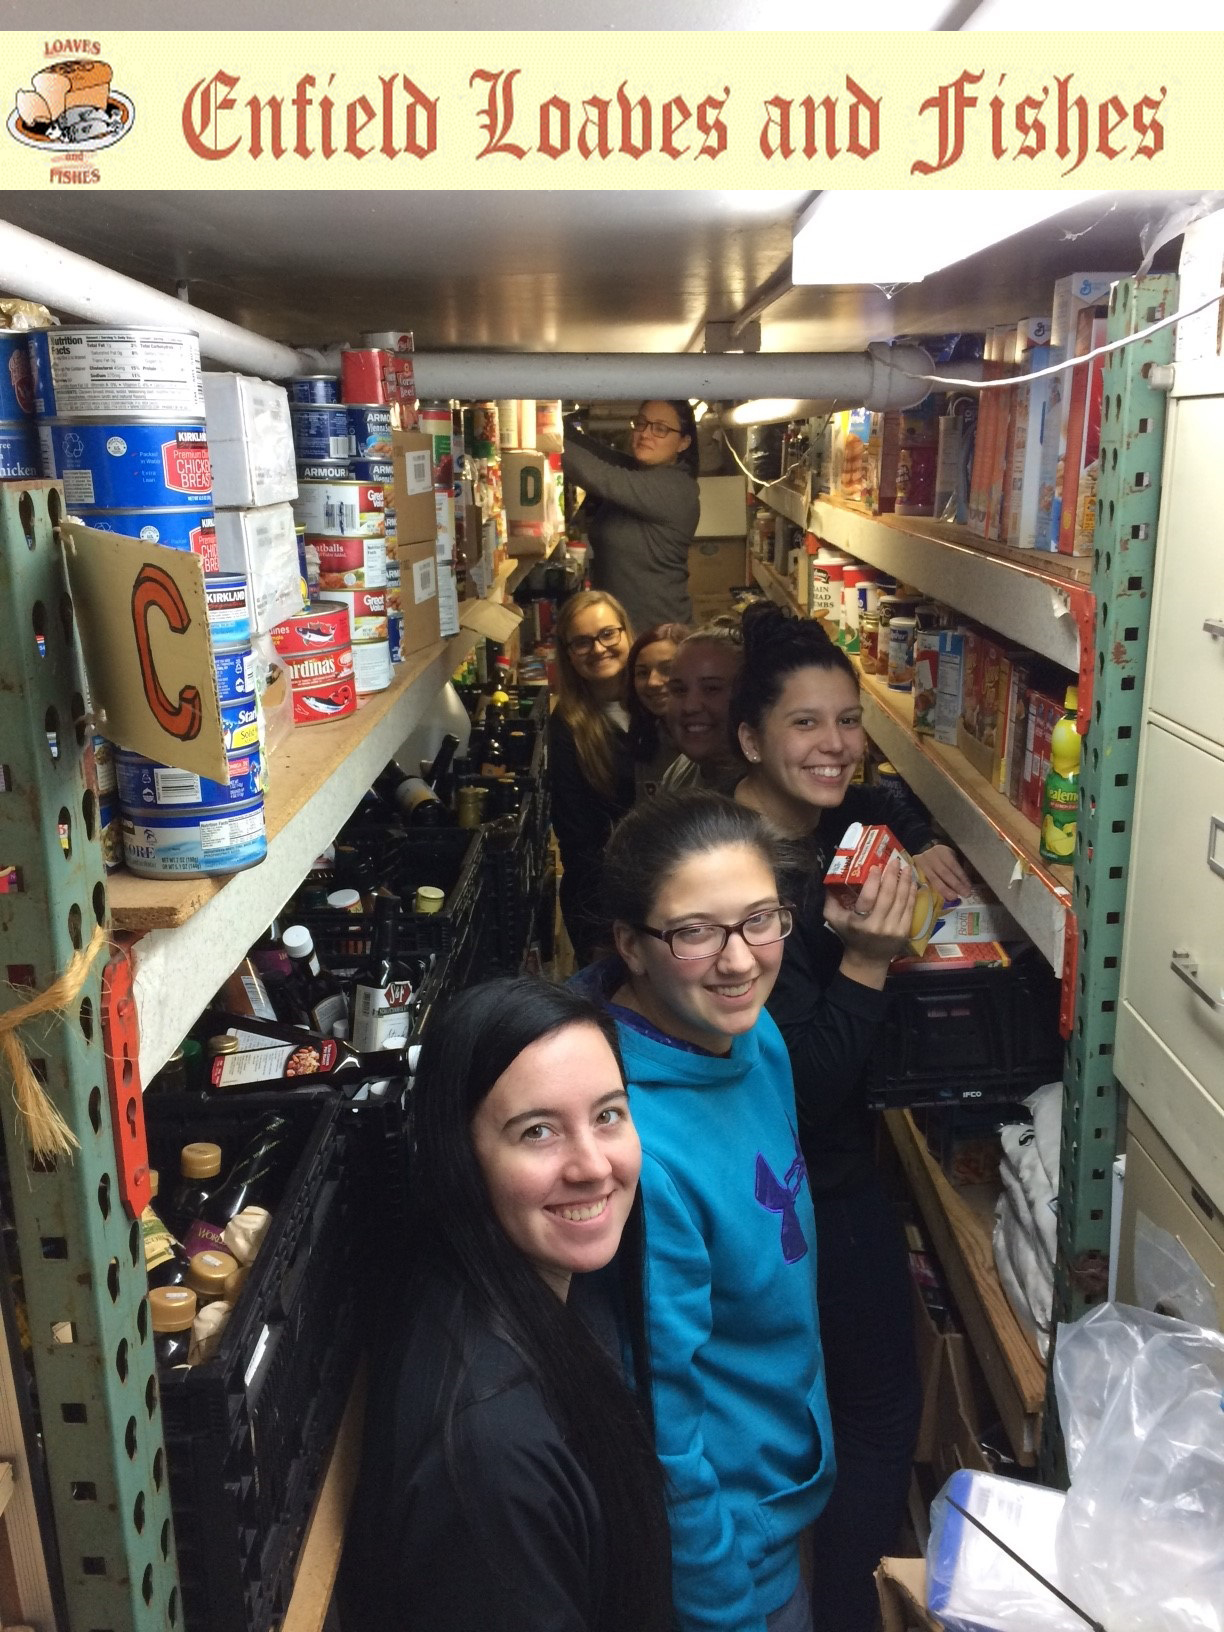 Bay Path student-athletes provide  needed support at local Enfield Loaves & Fishes Shelter